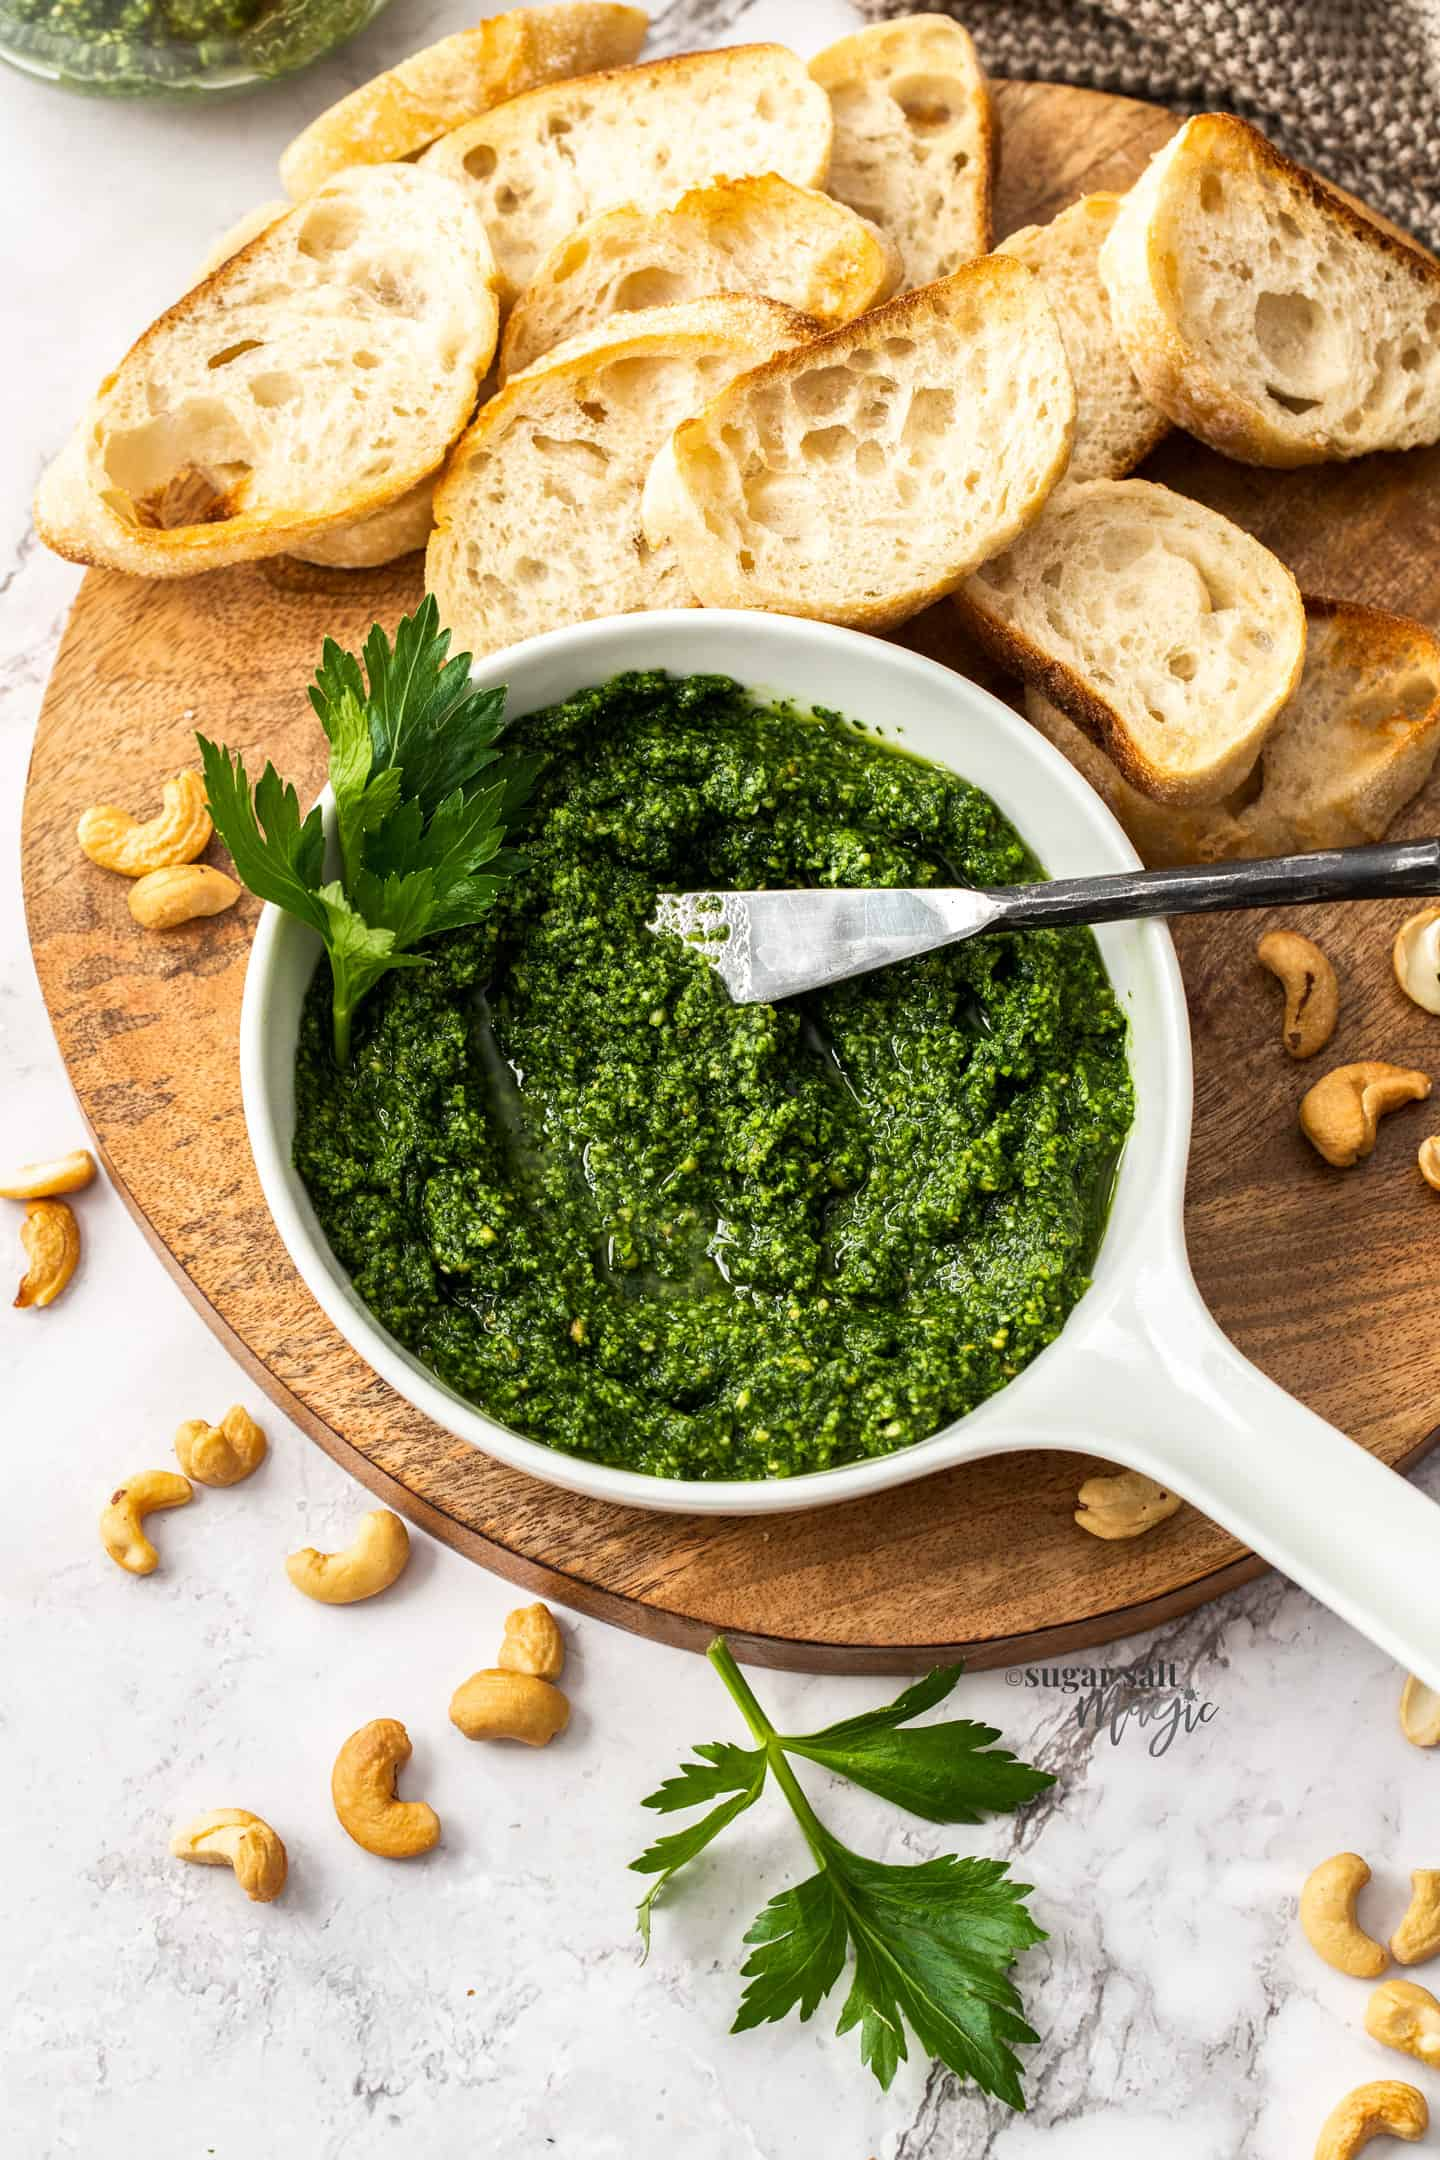 A white bowl filled with green pesto on a wooden board with slices of bread.